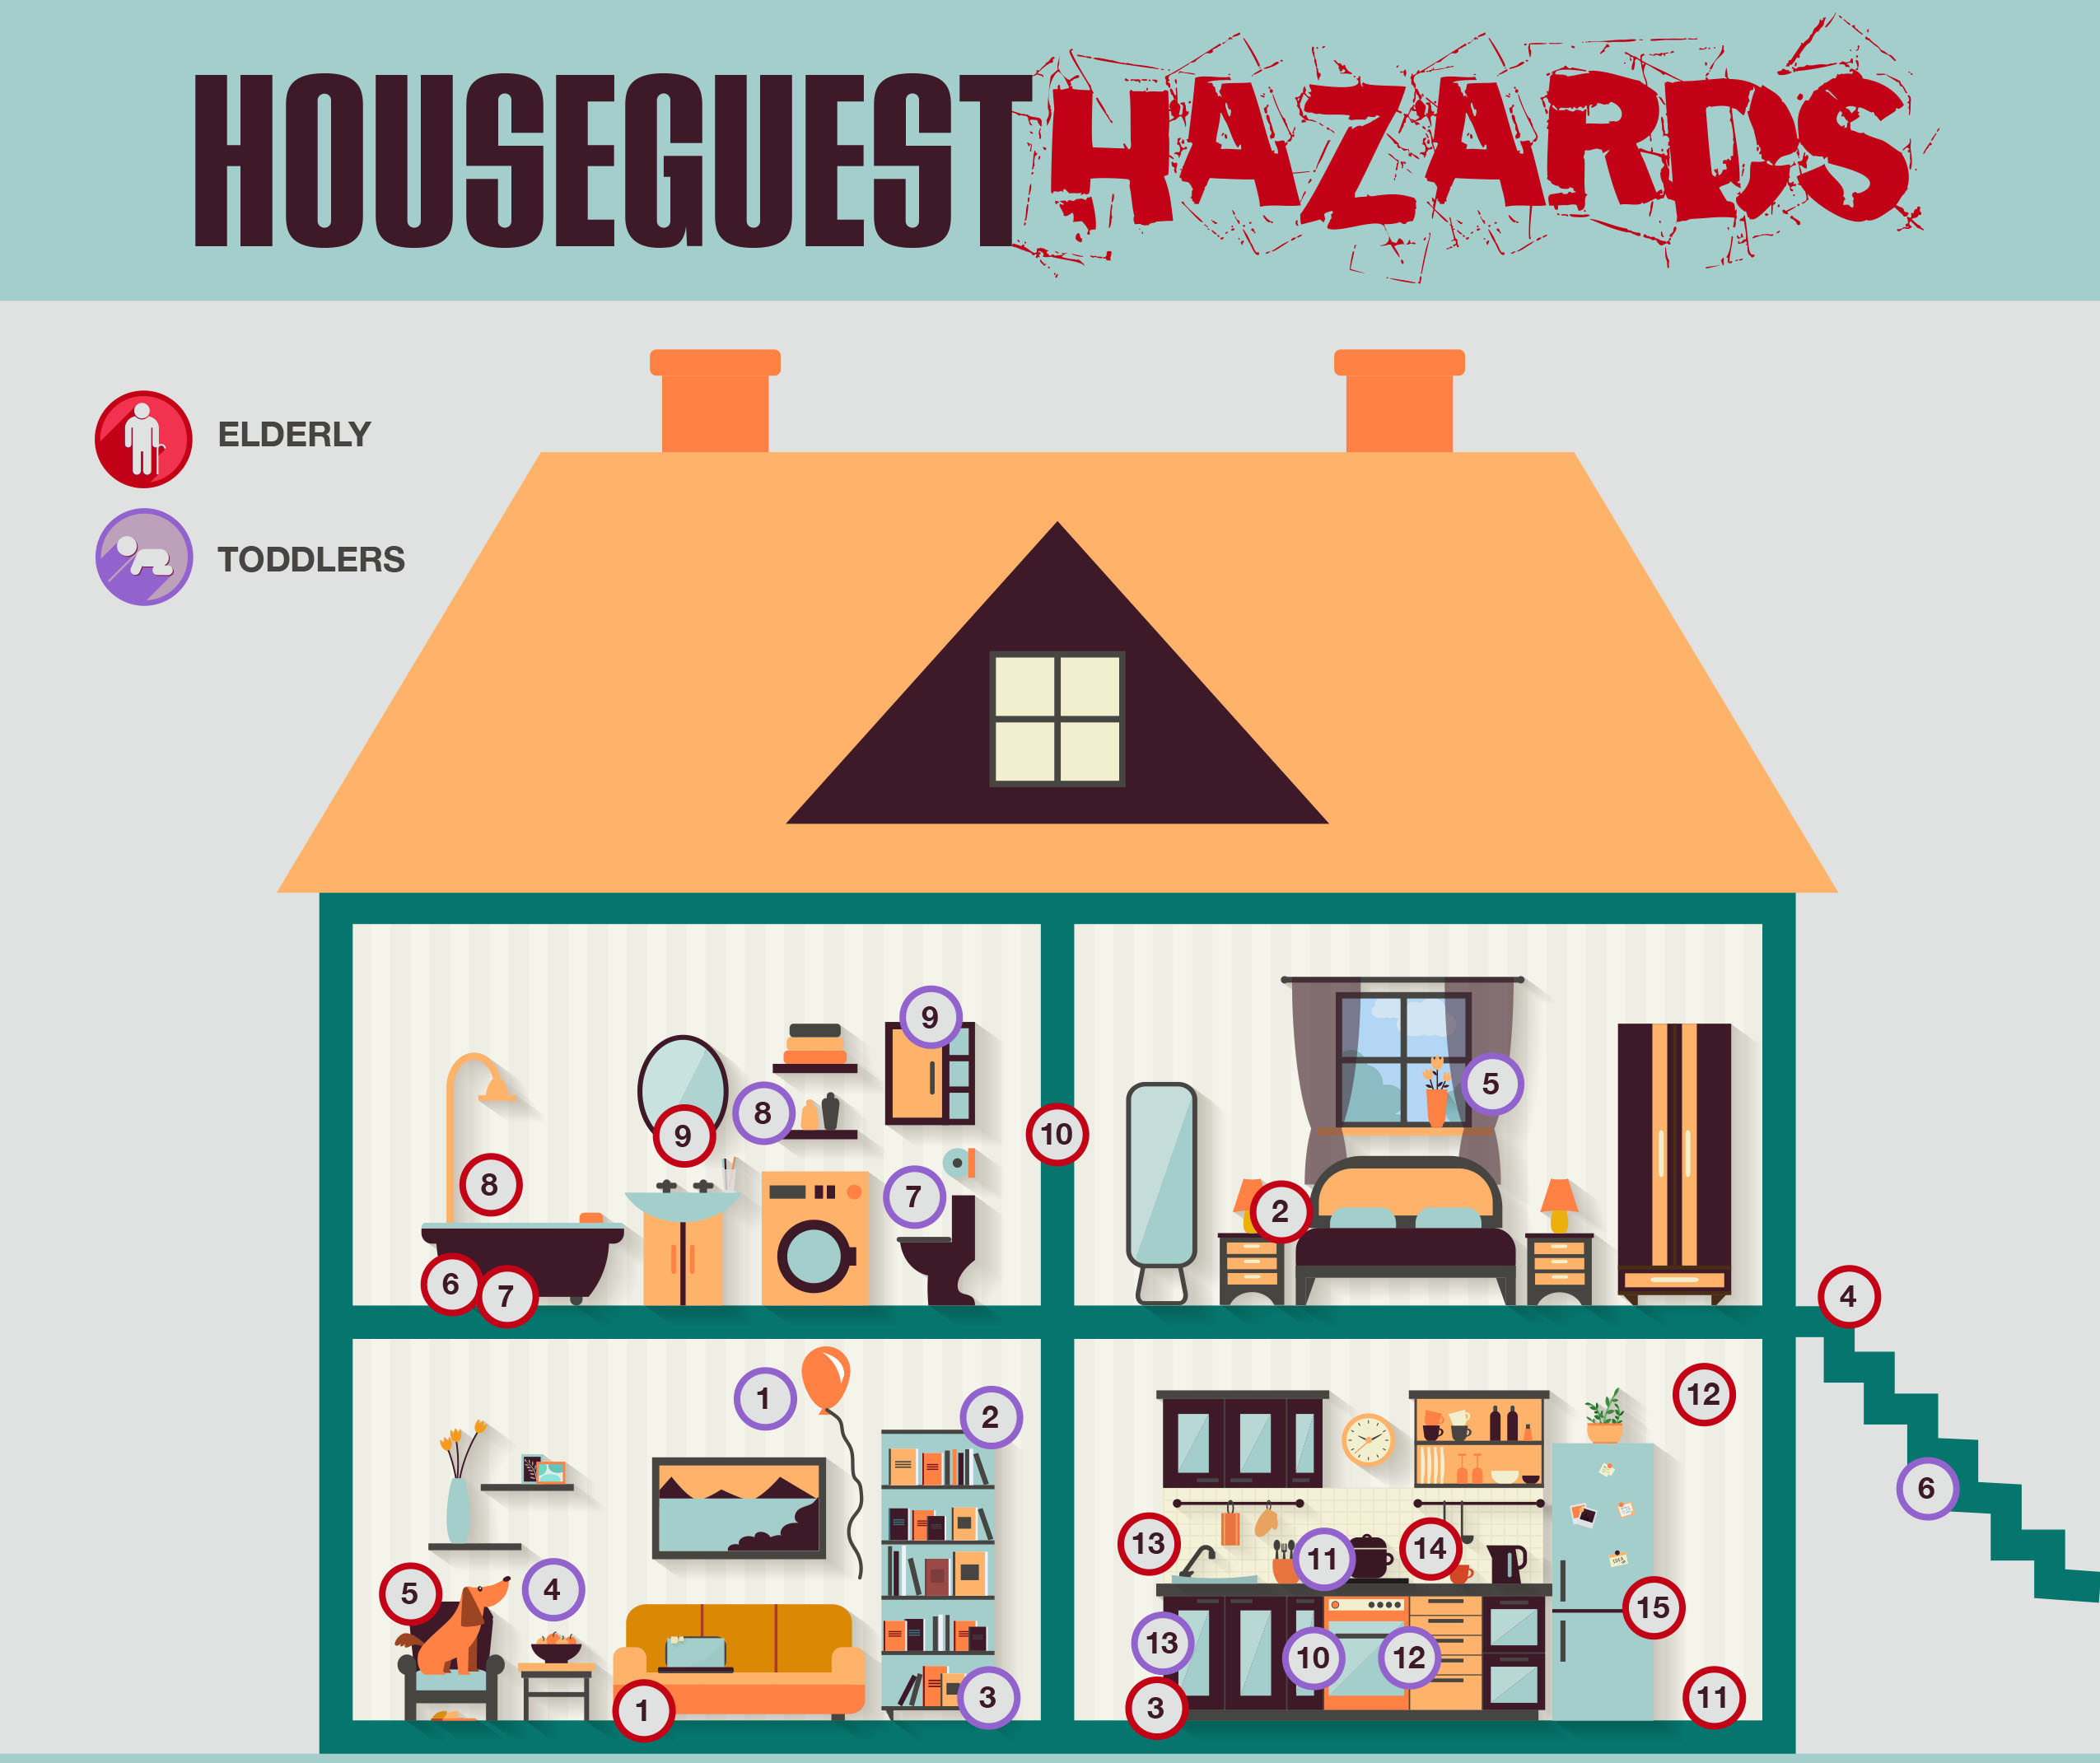 Houseguest Hazards for Florida Homeowners